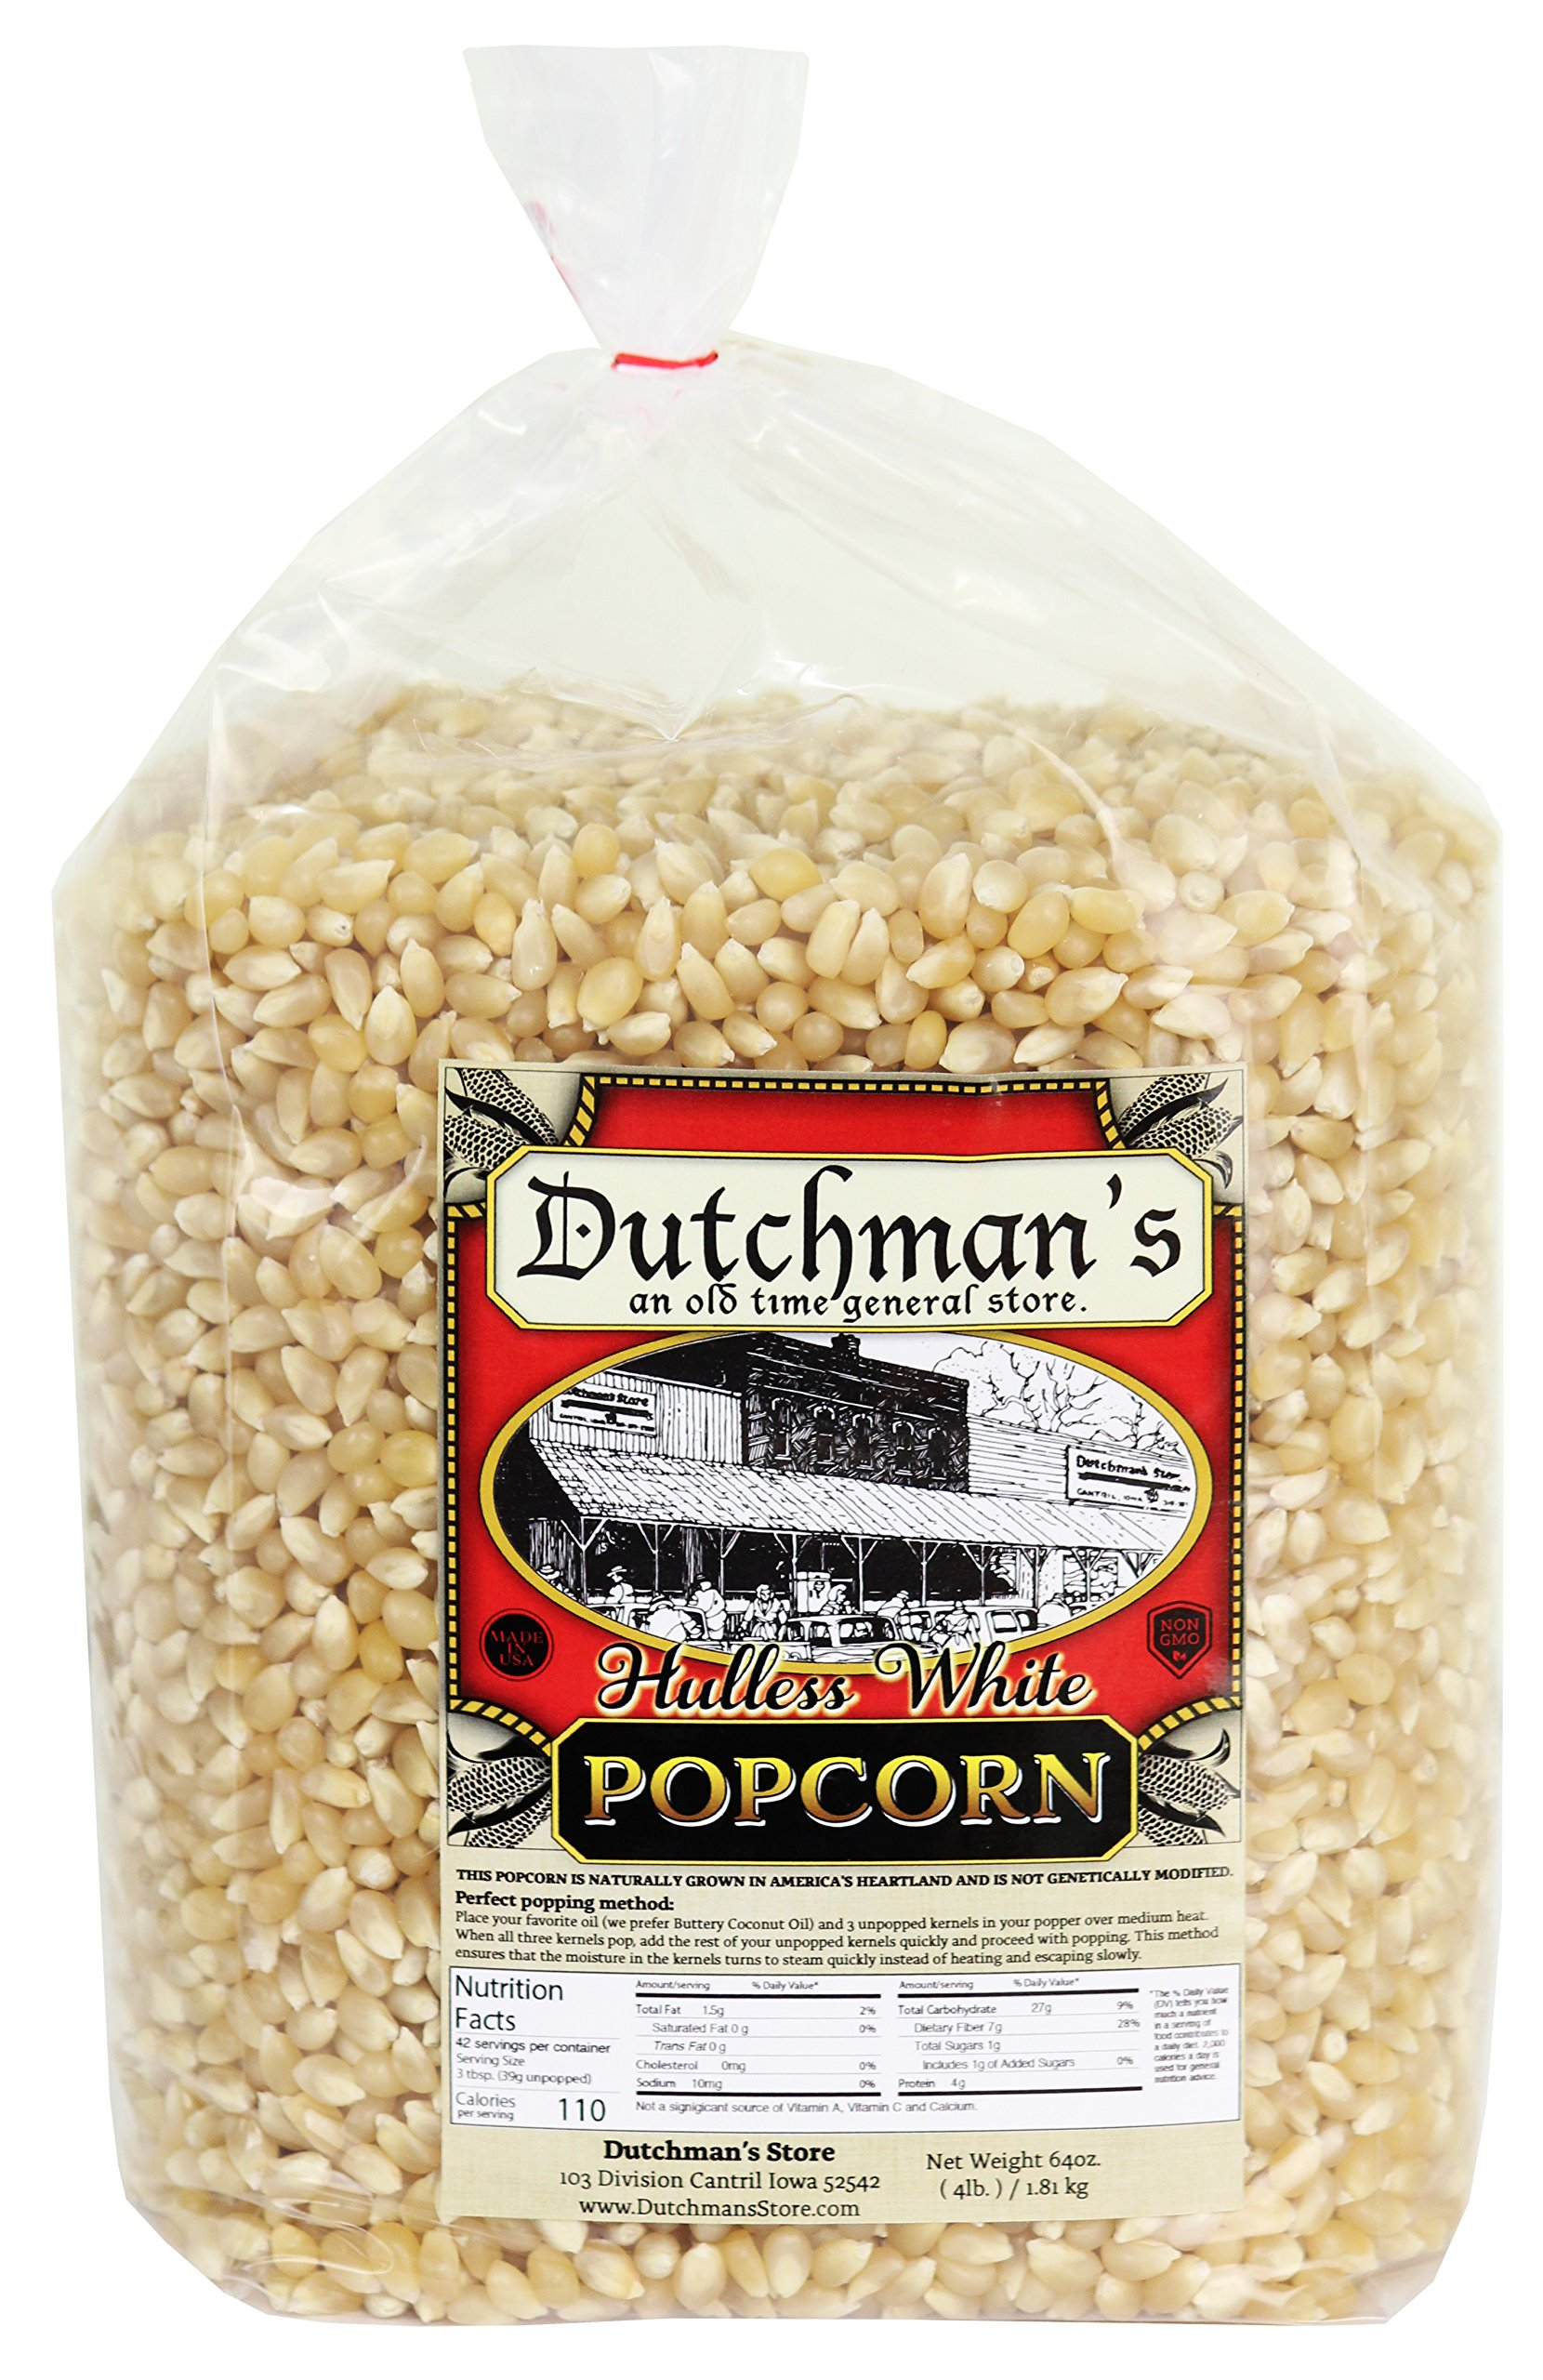 Dutchmans Popcorn - Medium Hulless White Popcorn Kernels - Four Pound Refill Bag, Old Fashioned